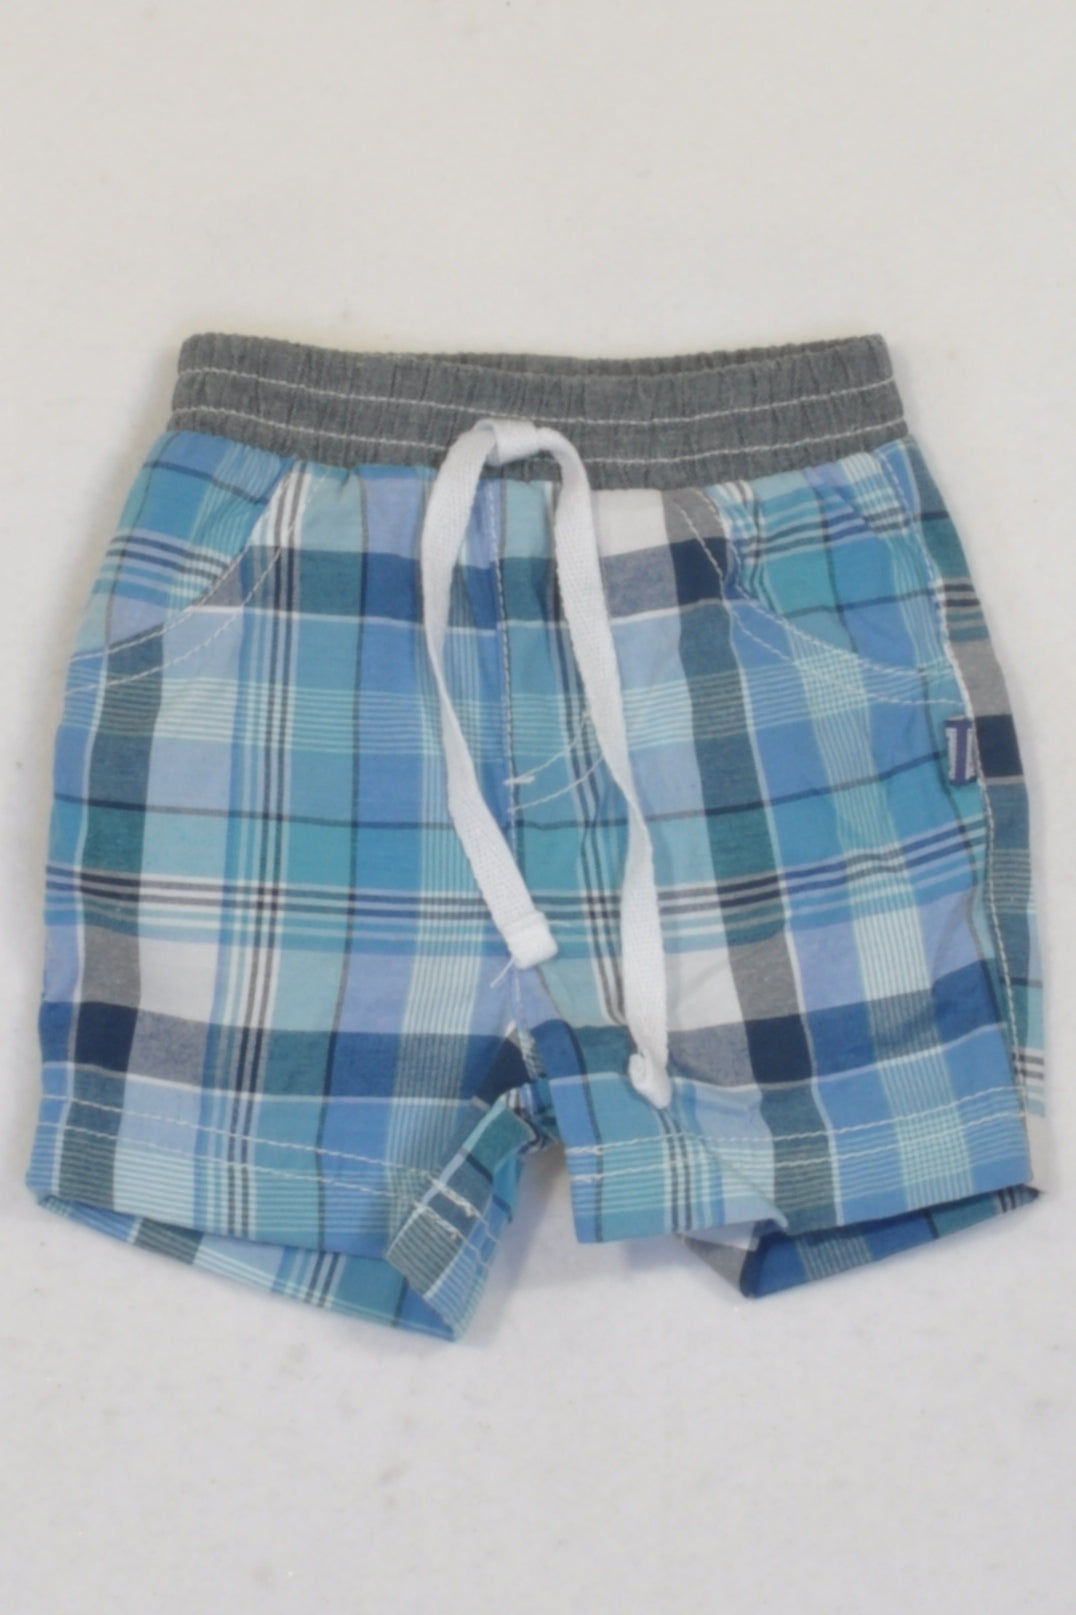 New Ackermans Blue & Mint Plaid Shorts Boys 0-3 months